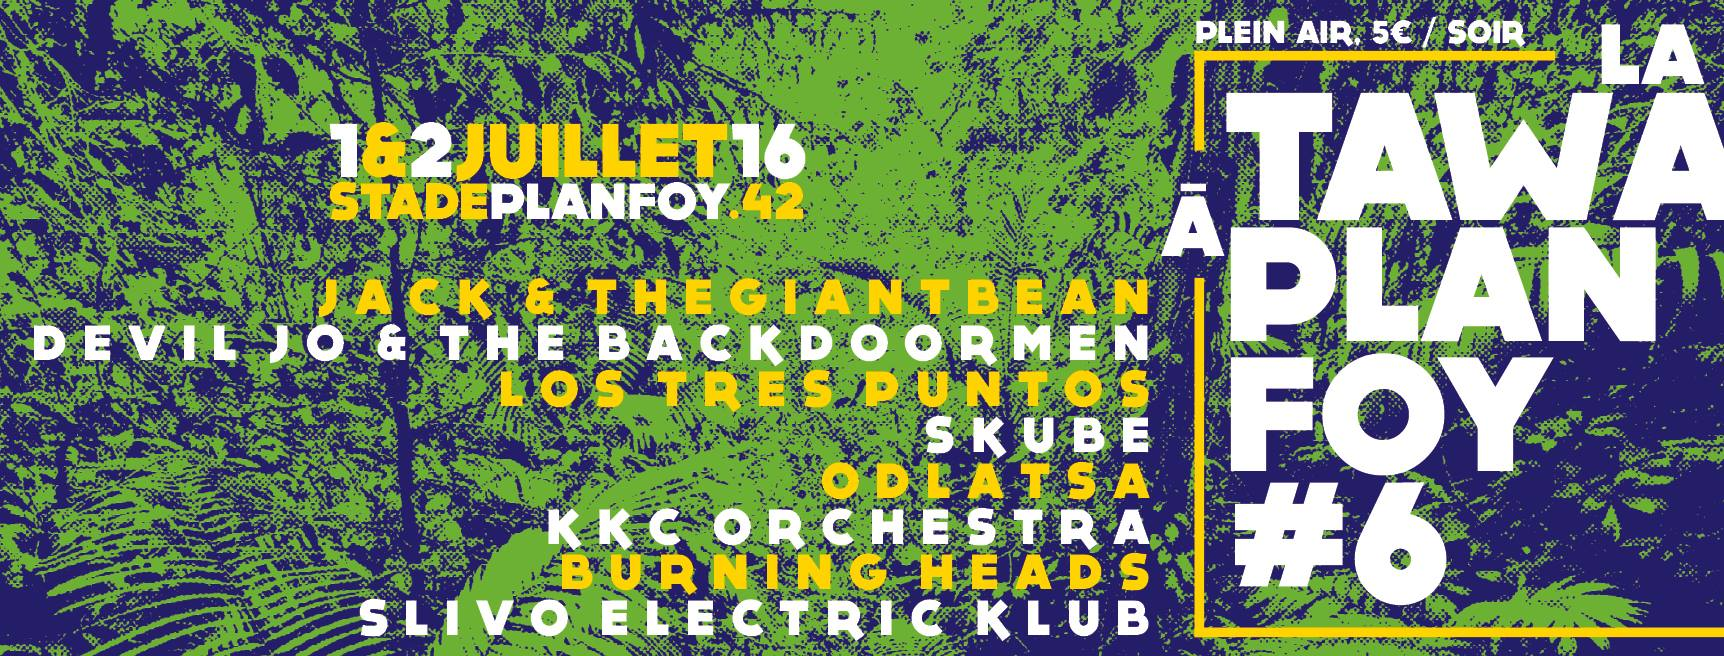 1er juillet 2016 Jack & the Giant Bean, Devil Jo & the Backdoormen, Los Tres Puntos, Skube à Planfoy